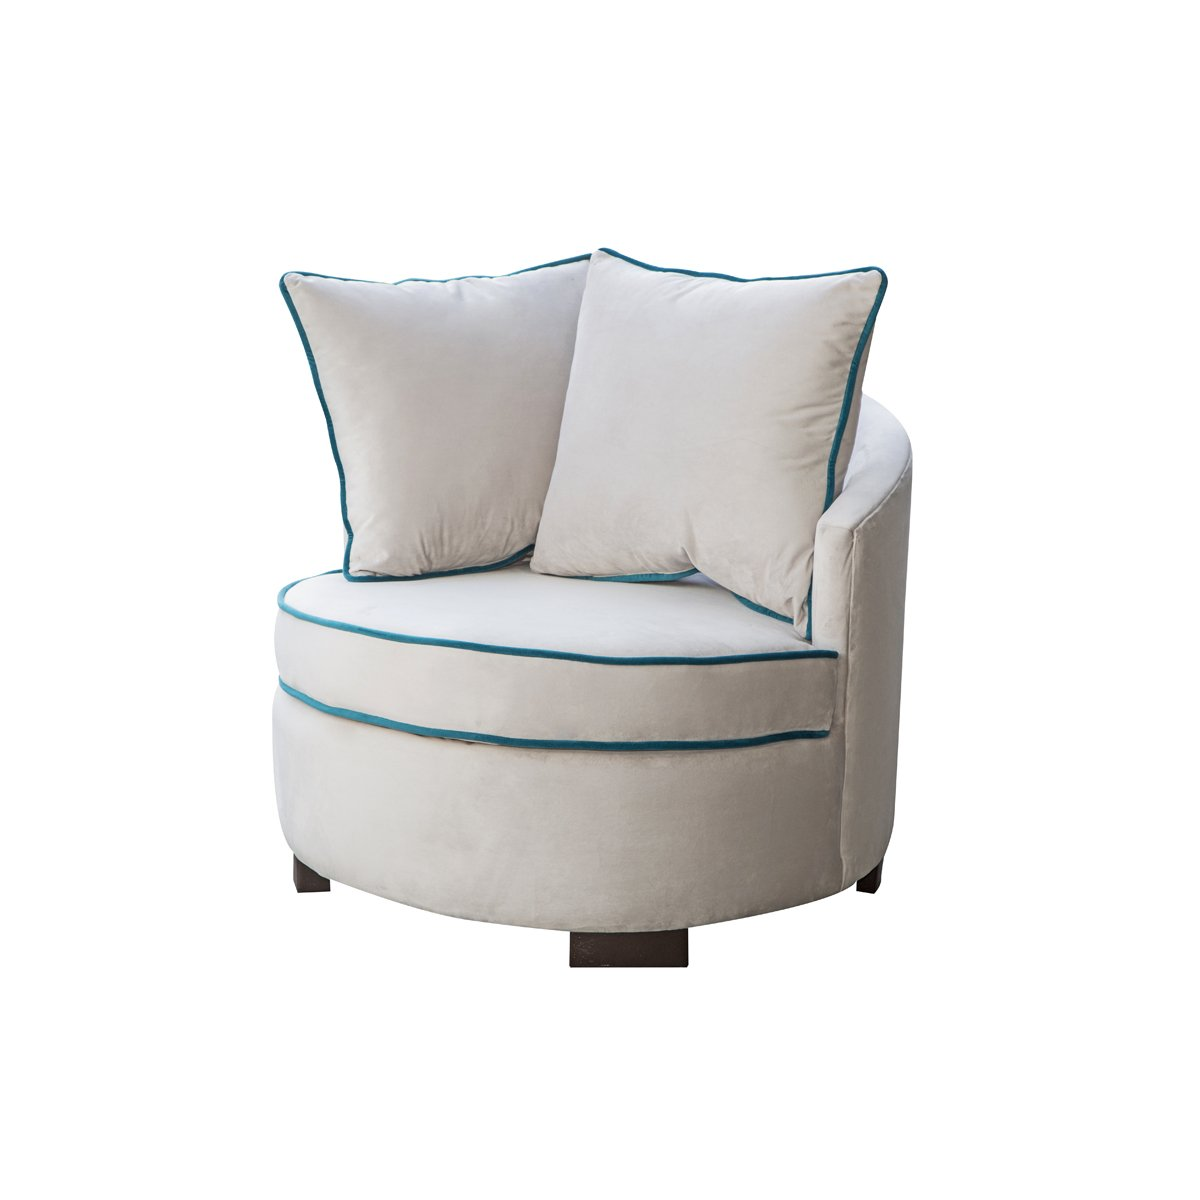 Sillones Redondos Sillones Redondos Silln Redondo Sofa With Sillones